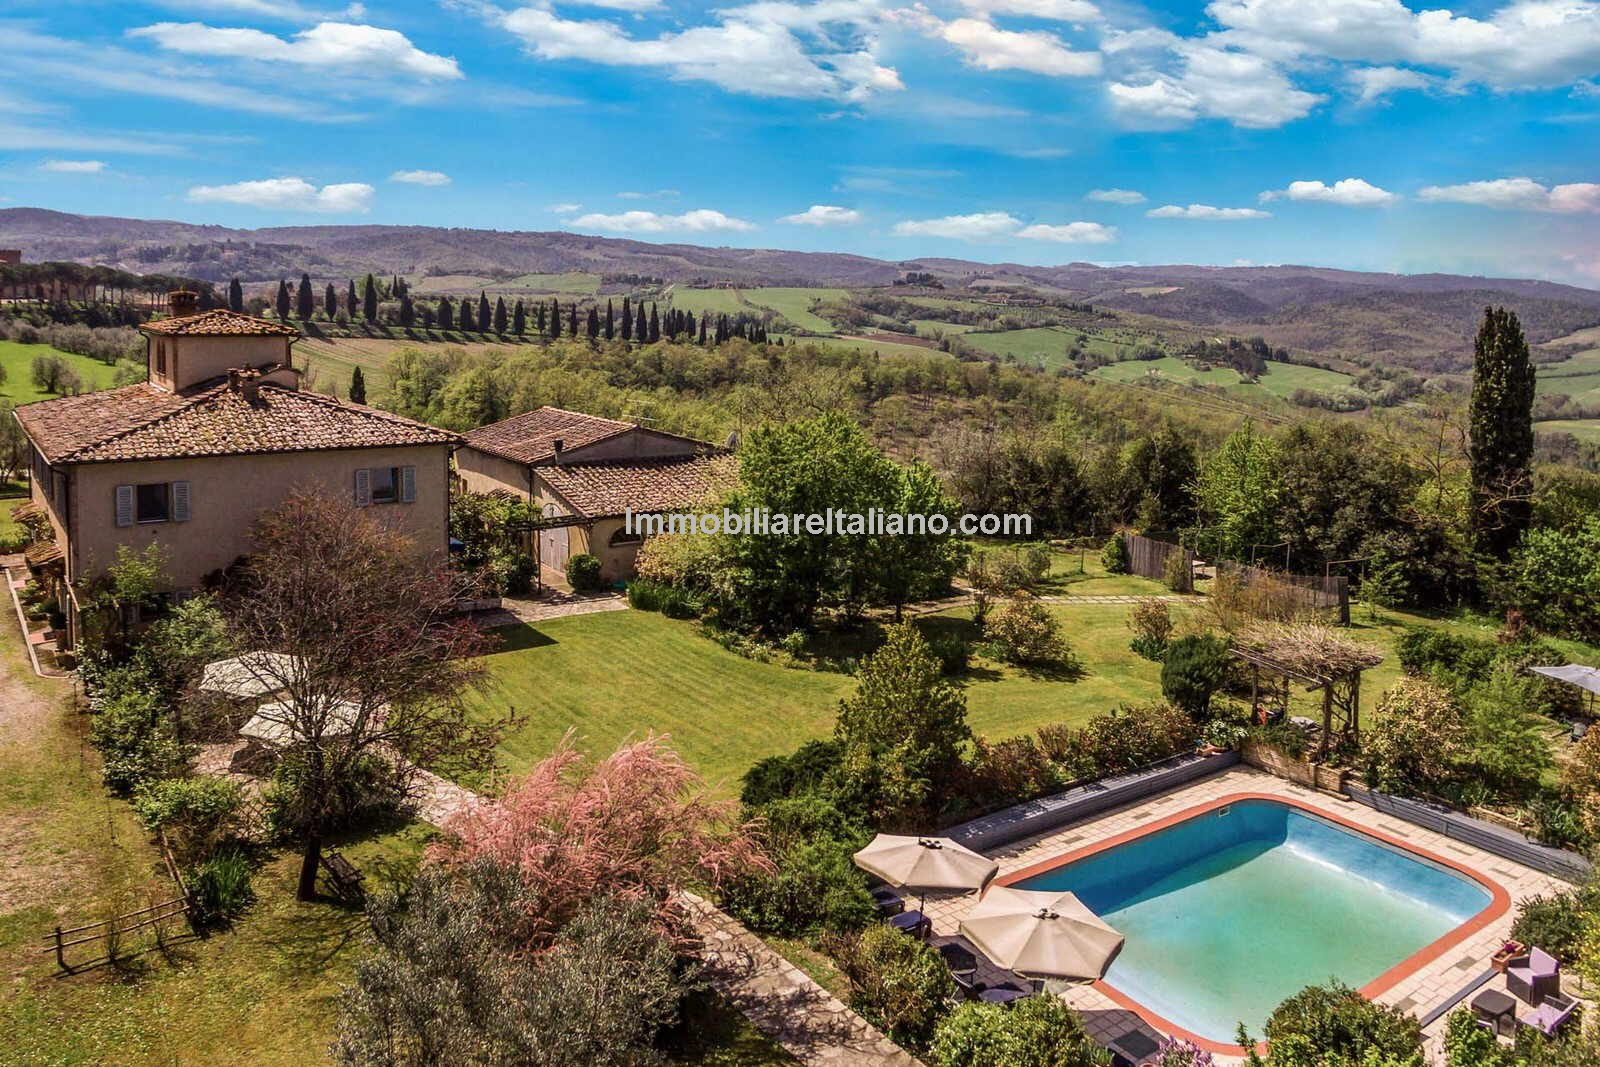 External view, Tuscan Bed and Breakfast property and pool